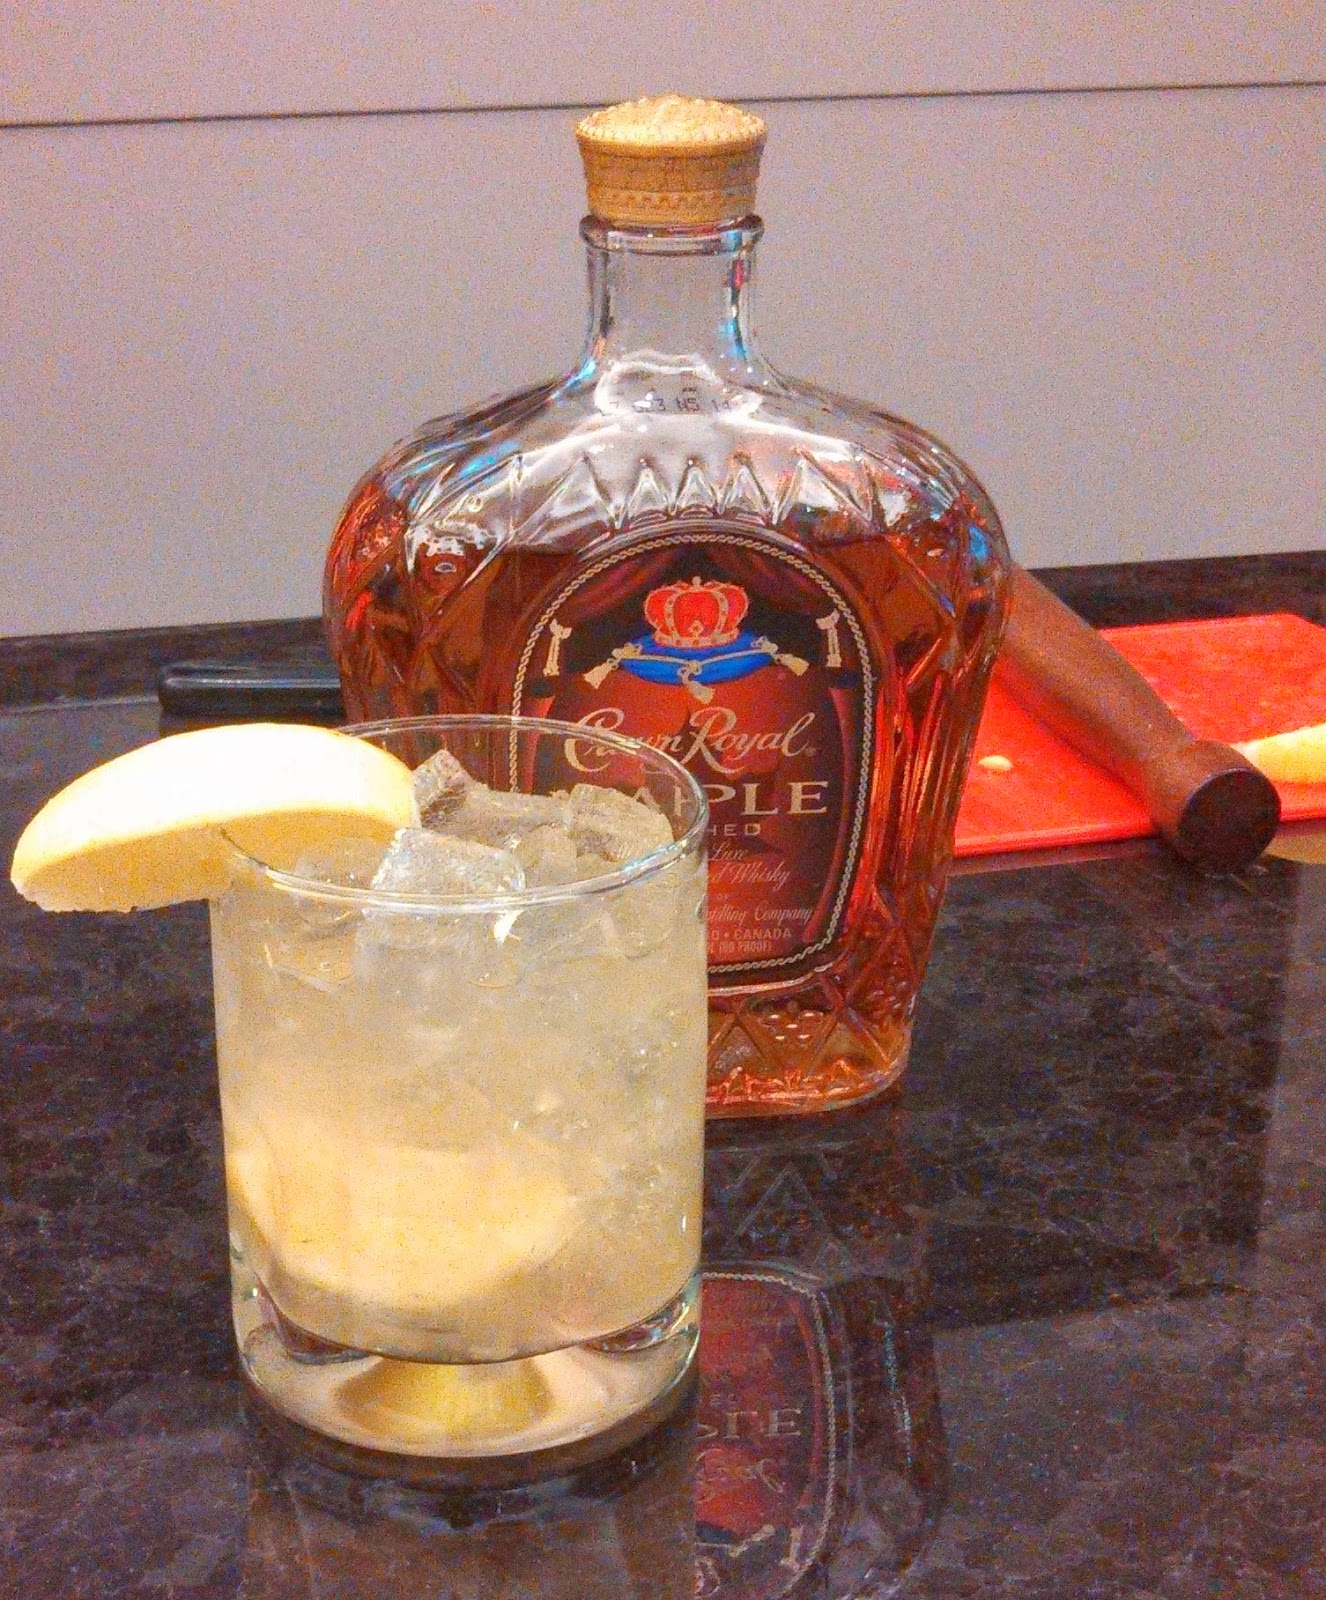 Crown Royal Maple Finish Manitoba Cocktail